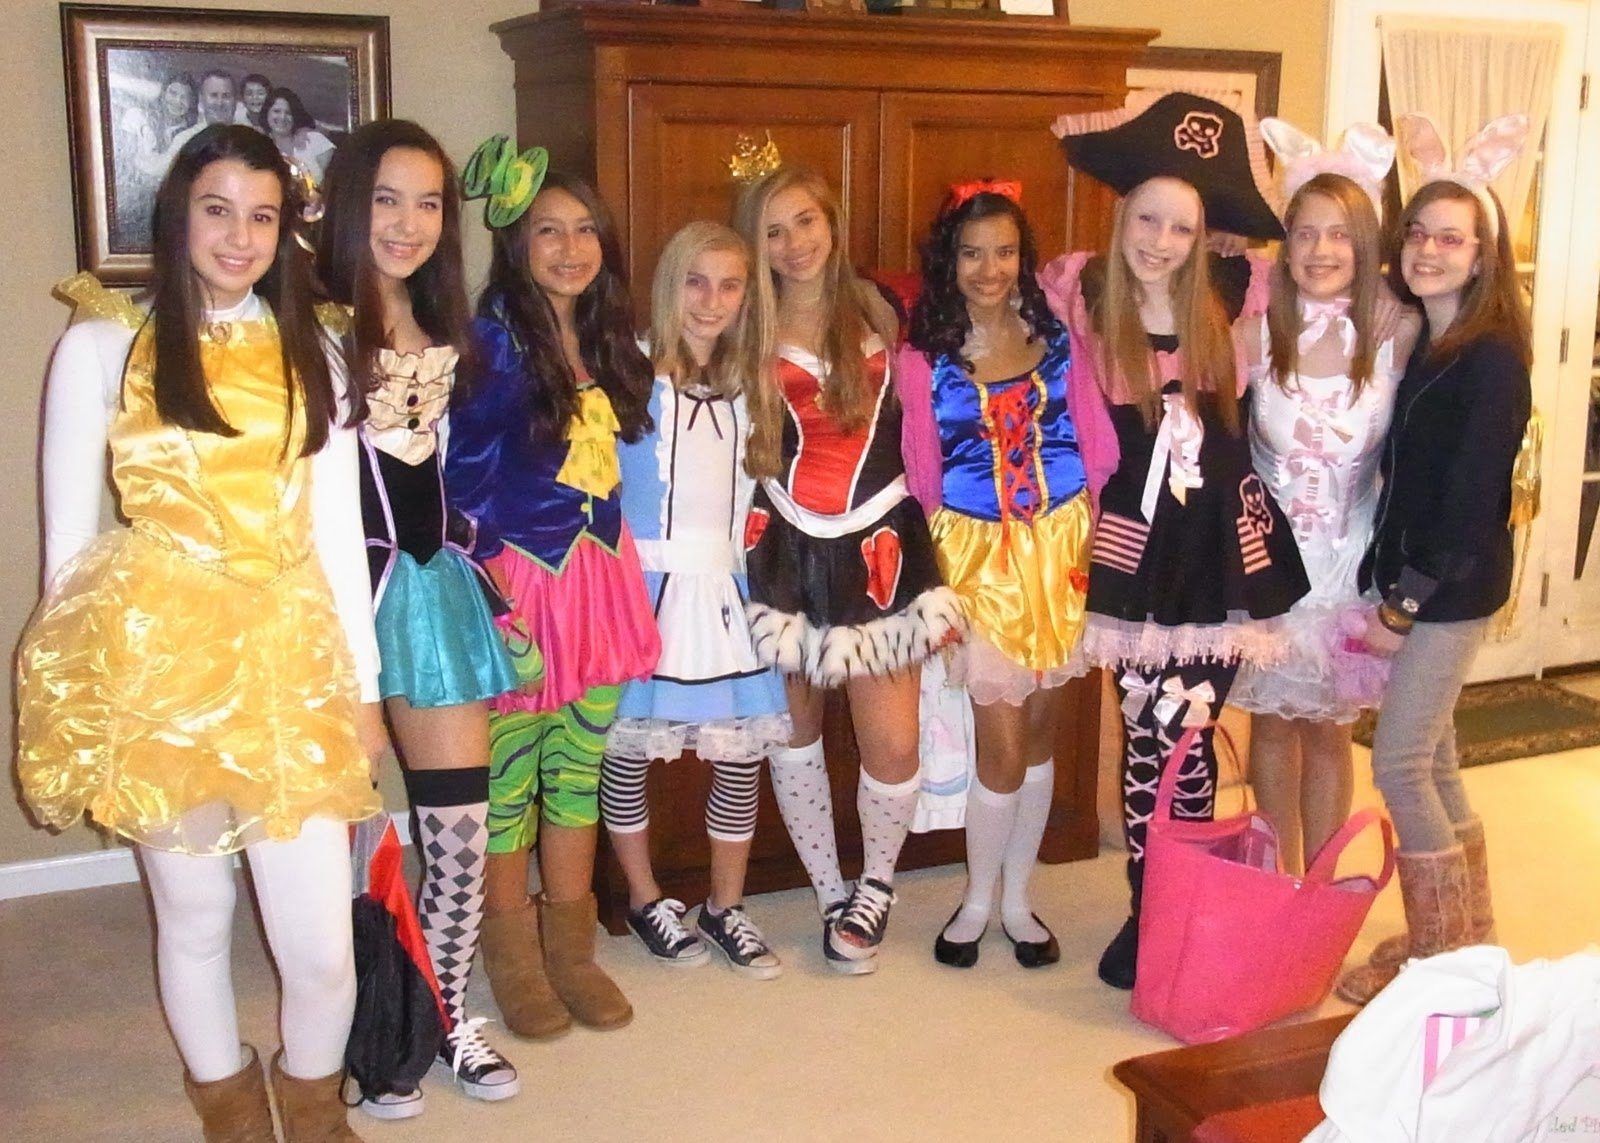 10 Ideal Good Ideas For A Halloween Costume pinflankkks on cool halloween outfits pinterest 2020